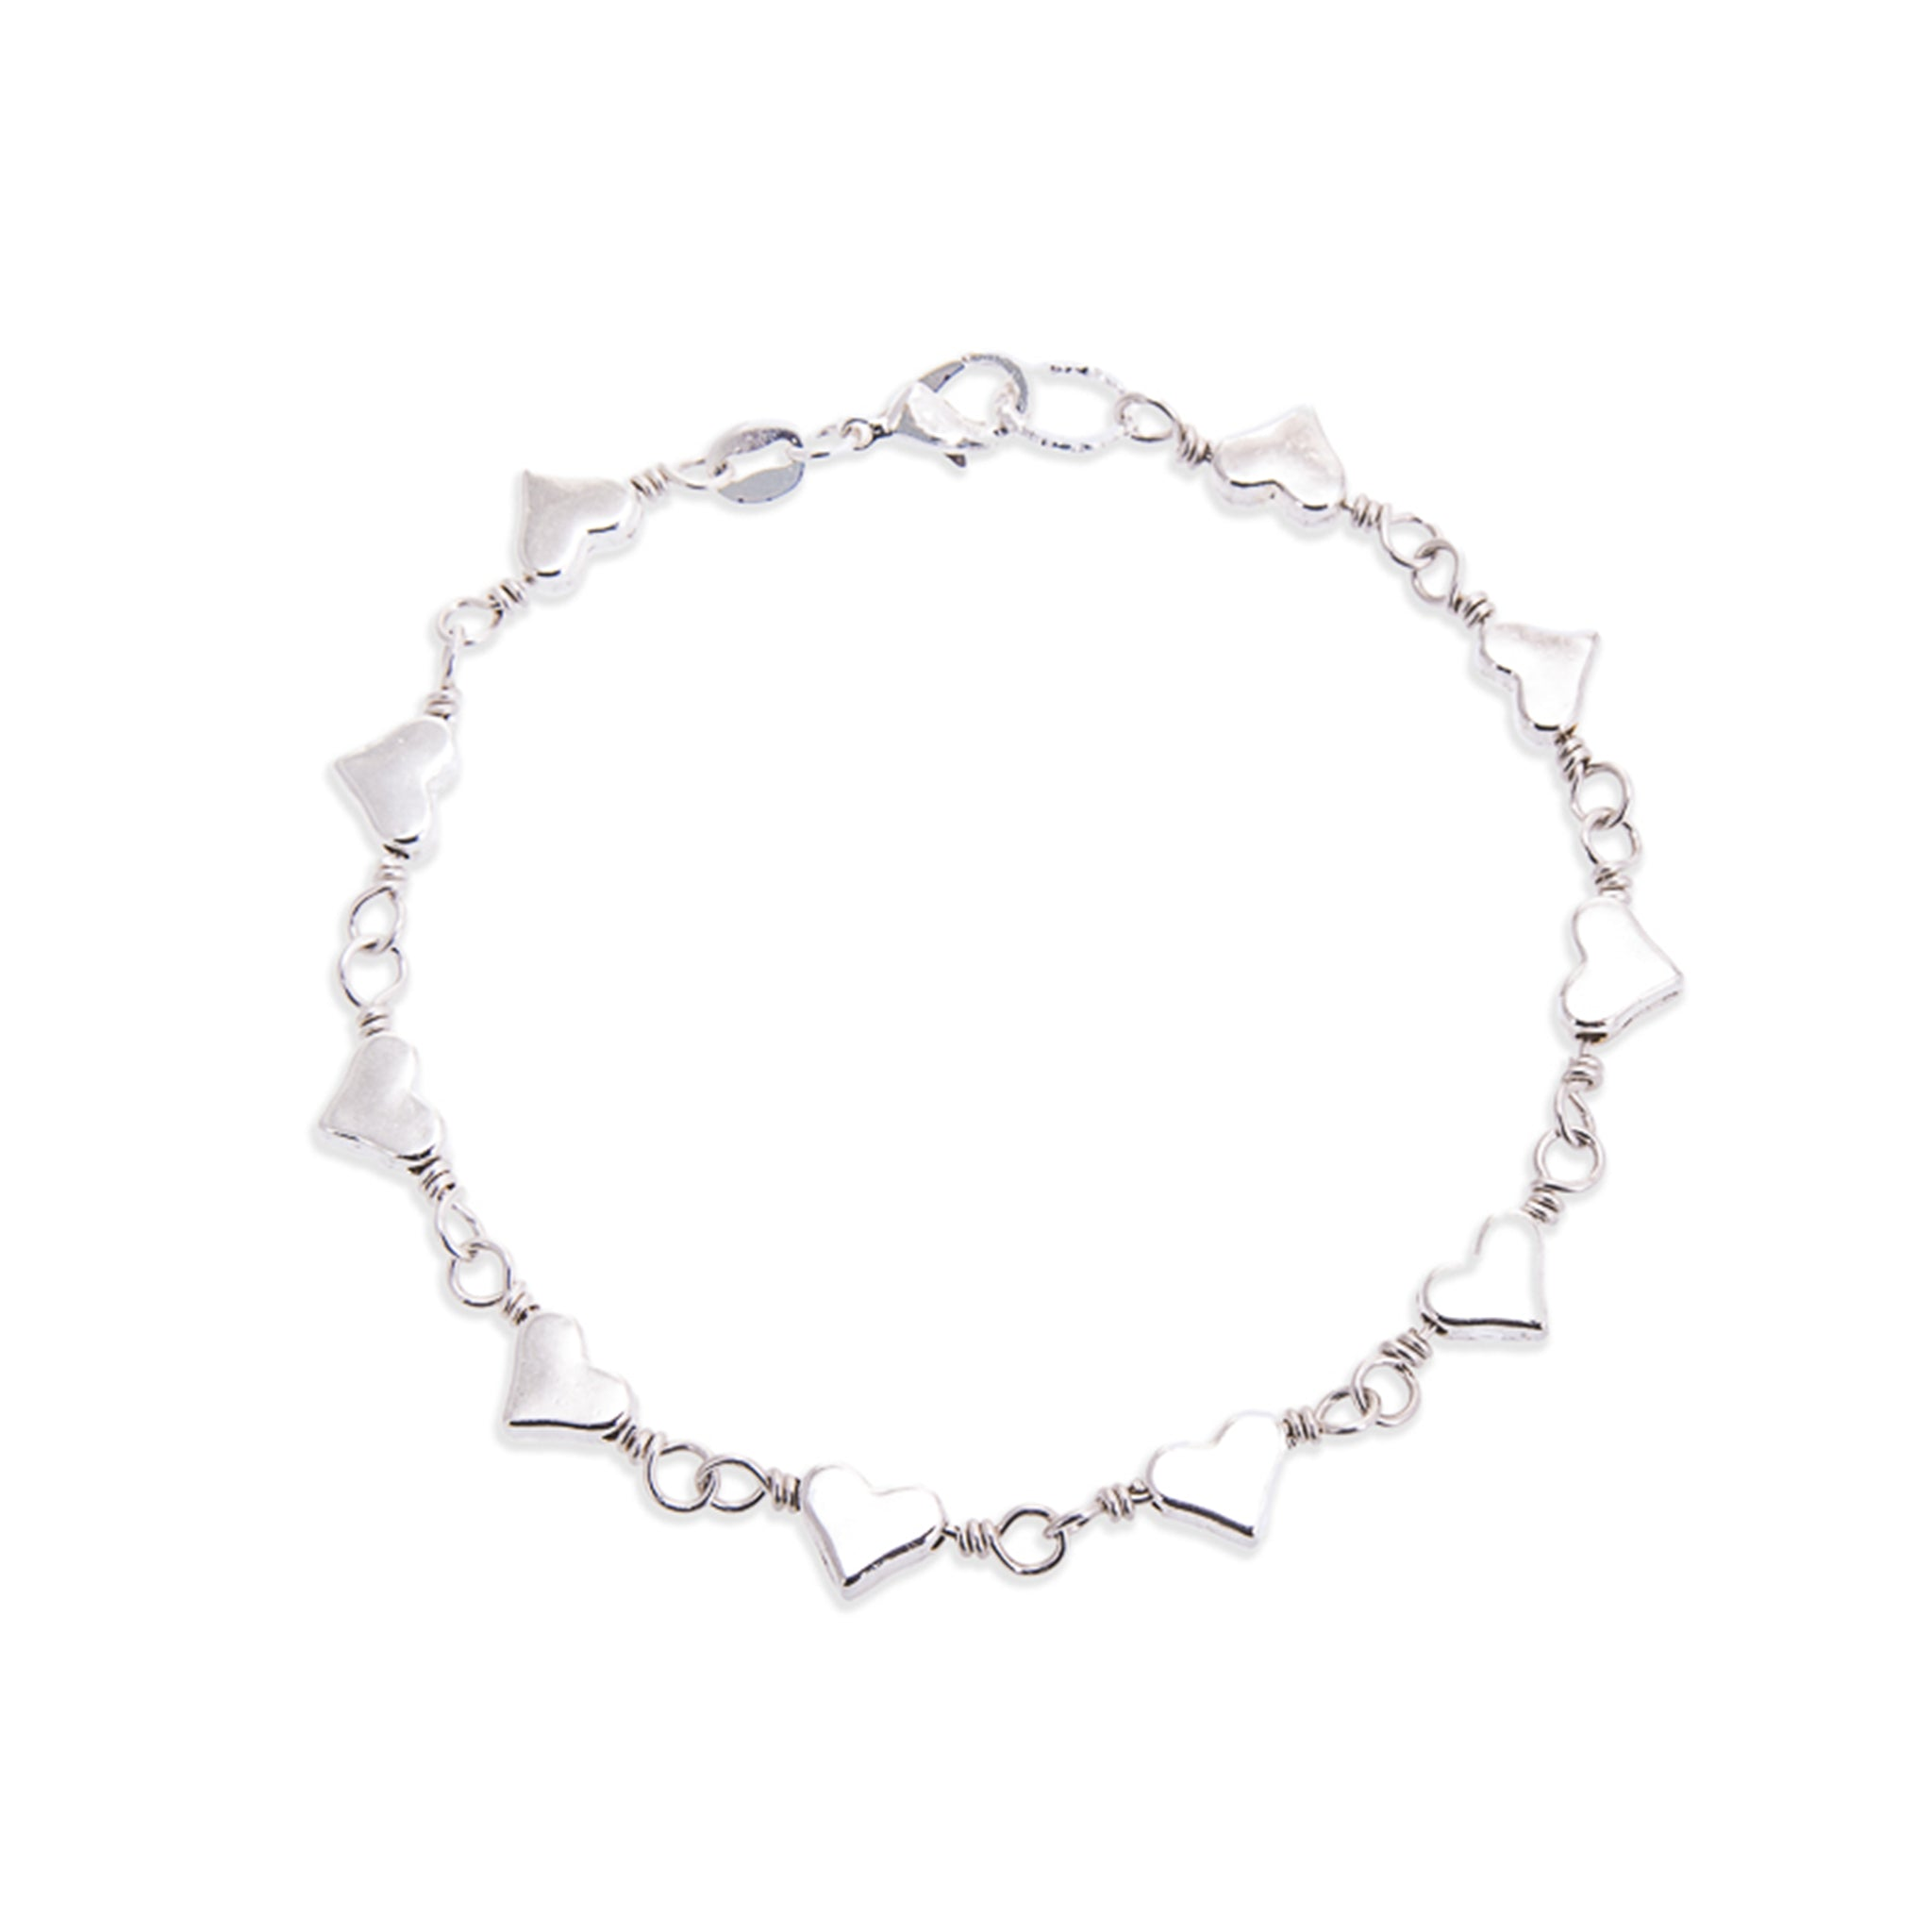 Handmade Silver Heart Bracelet - Personalised Gift with Wording of your choice - Swanky Collection